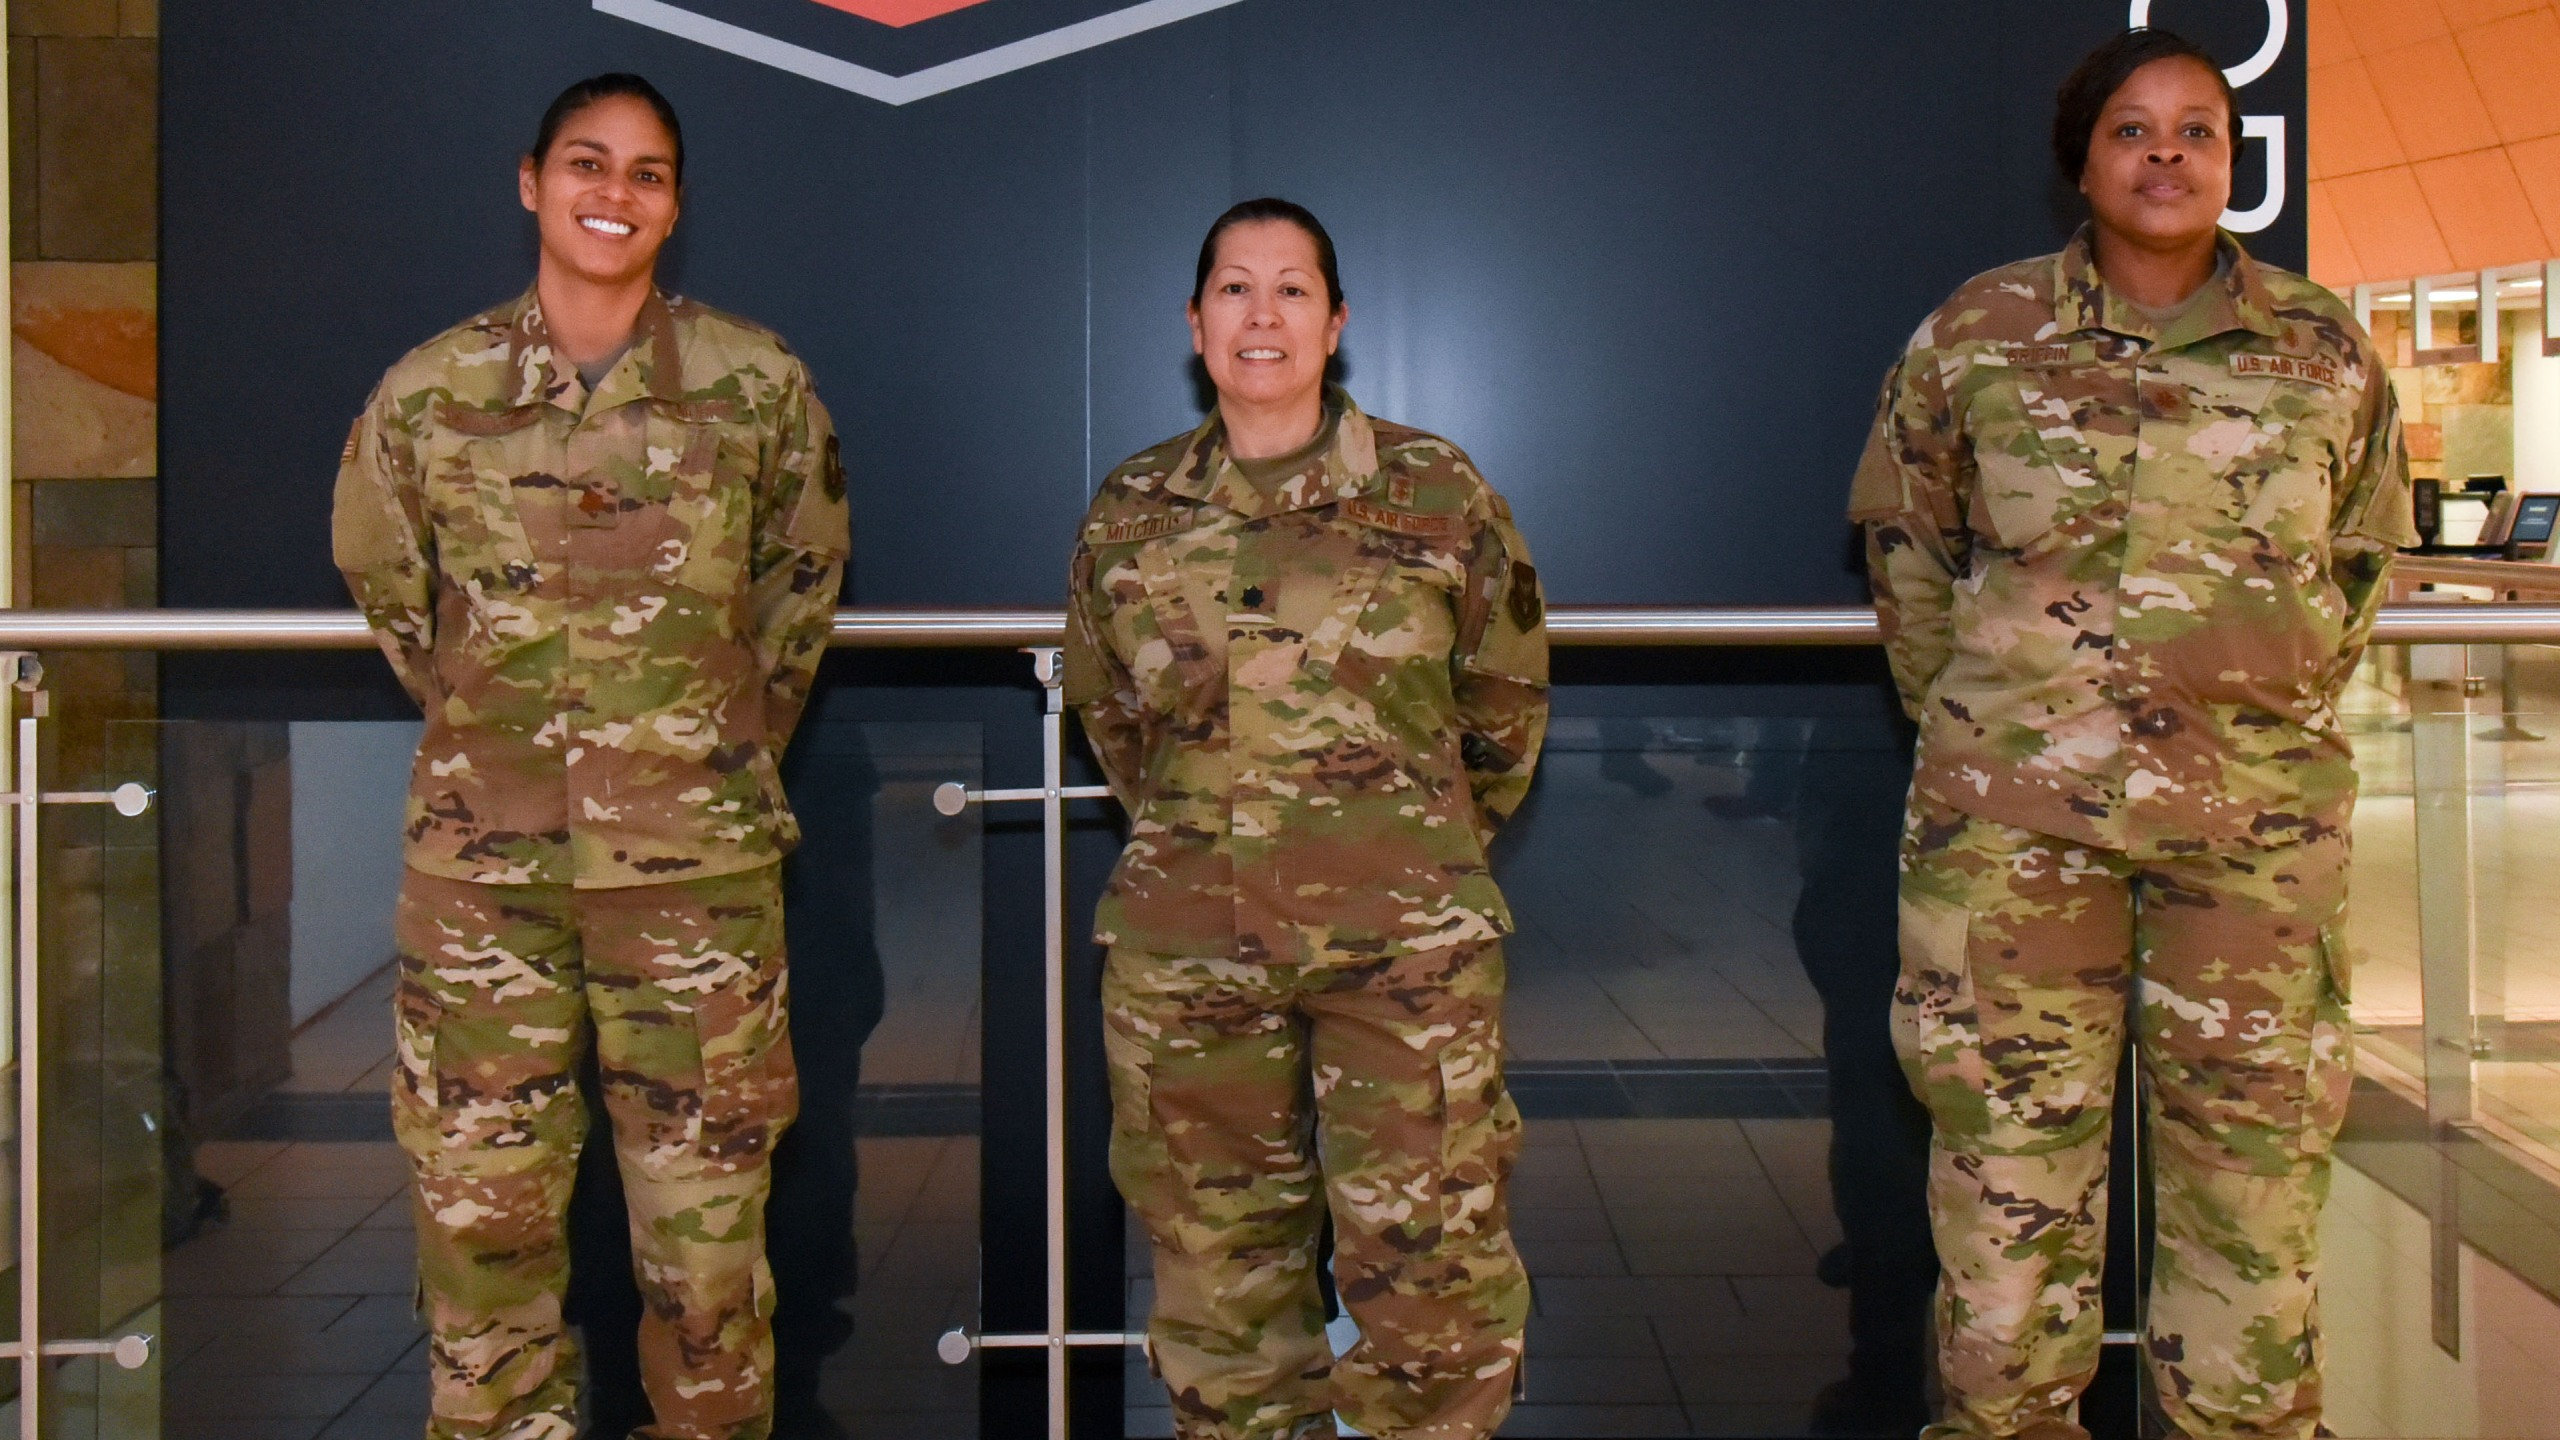 Maj. Lisa Morris, Lt. Col. Esther Mitchell and Maj. Jolina Griffin, nurses with the 507th Medical Squadron at Tinker Air Force Base, Oklahoma, prepare to deploy to help the fight against COVID-19 April 7, 2020. The deployment is part of a larger mobilization package of more than 120 doctors, nurses and respiratory technicians Air Force Reserve units across the nation provided within 48 hours in support of COVID-19 response to take care of Americans. (U.S. Air Force photo by Senior Airman Mary Begy)